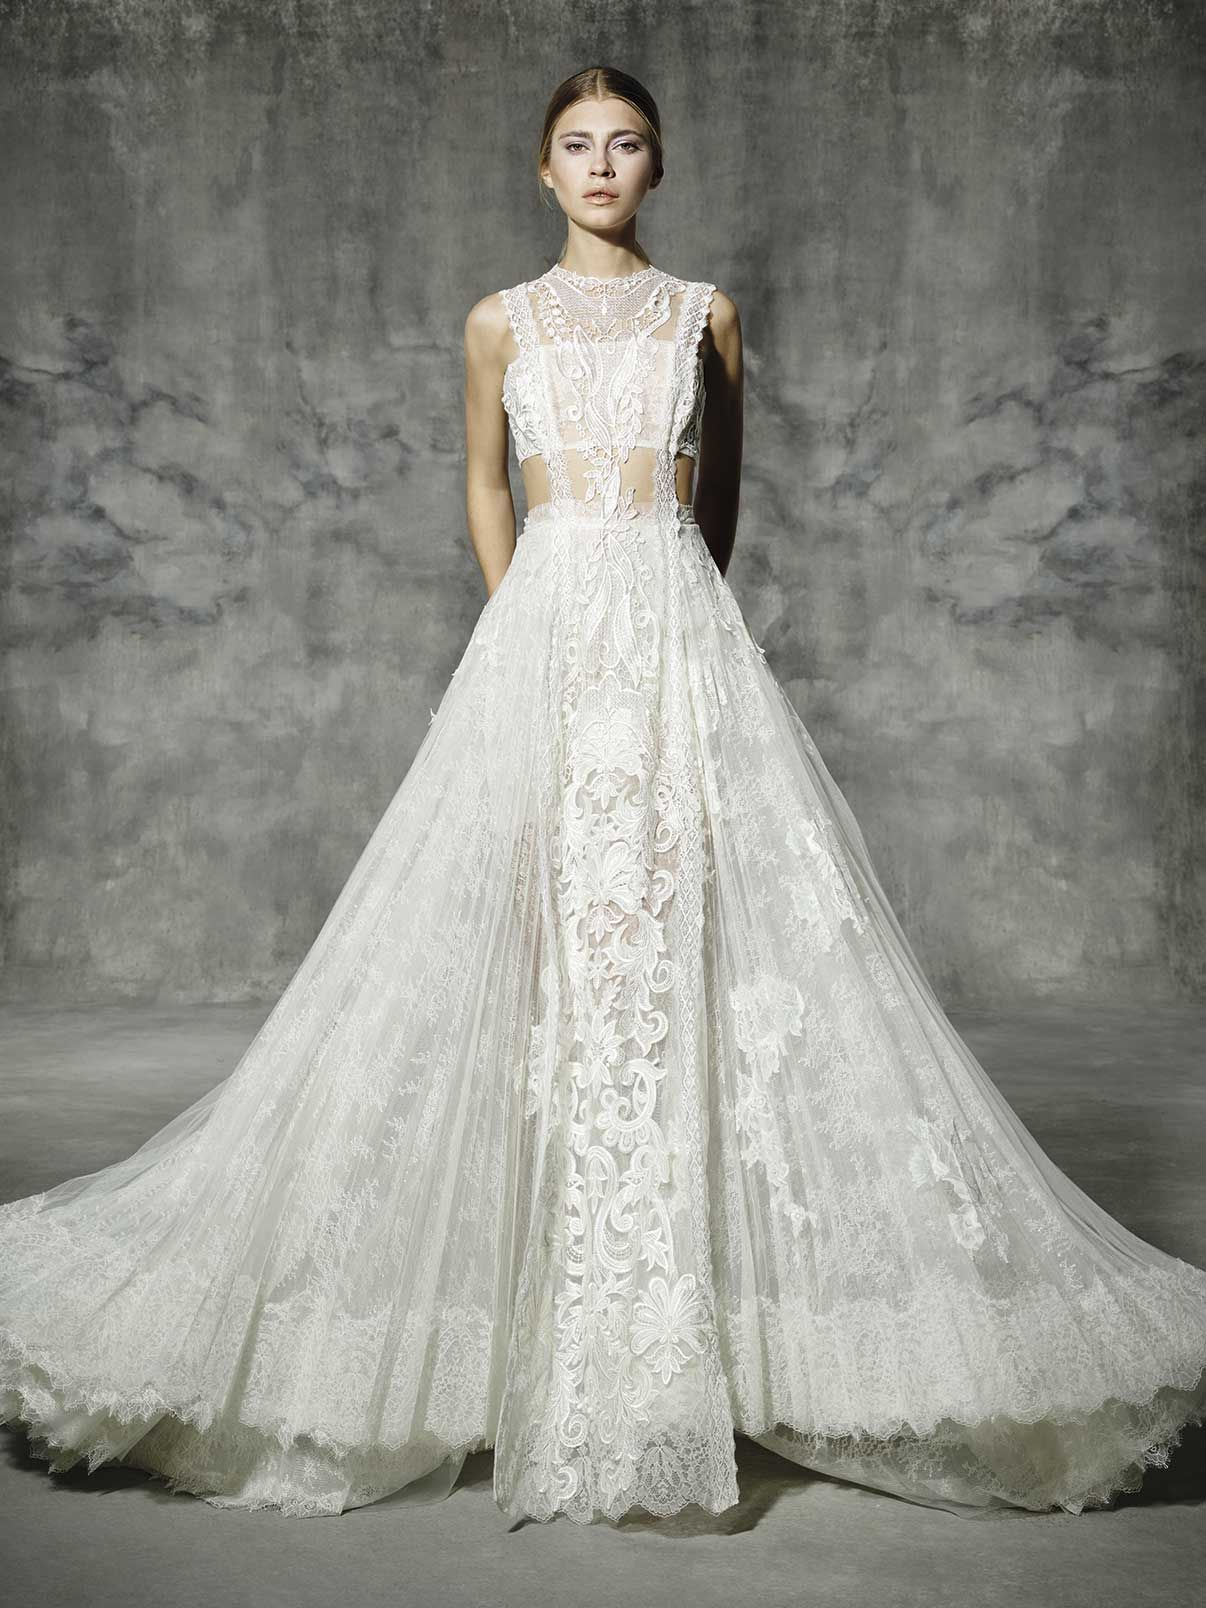 Atocha yolancris romantic couture dress wedding barcelona yolancris romantic wedding dresses and lace wedding gowns ideal for outdoor weddings tailored made by top bridal designer bridal atelier in barcelona ombrellifo Choice Image